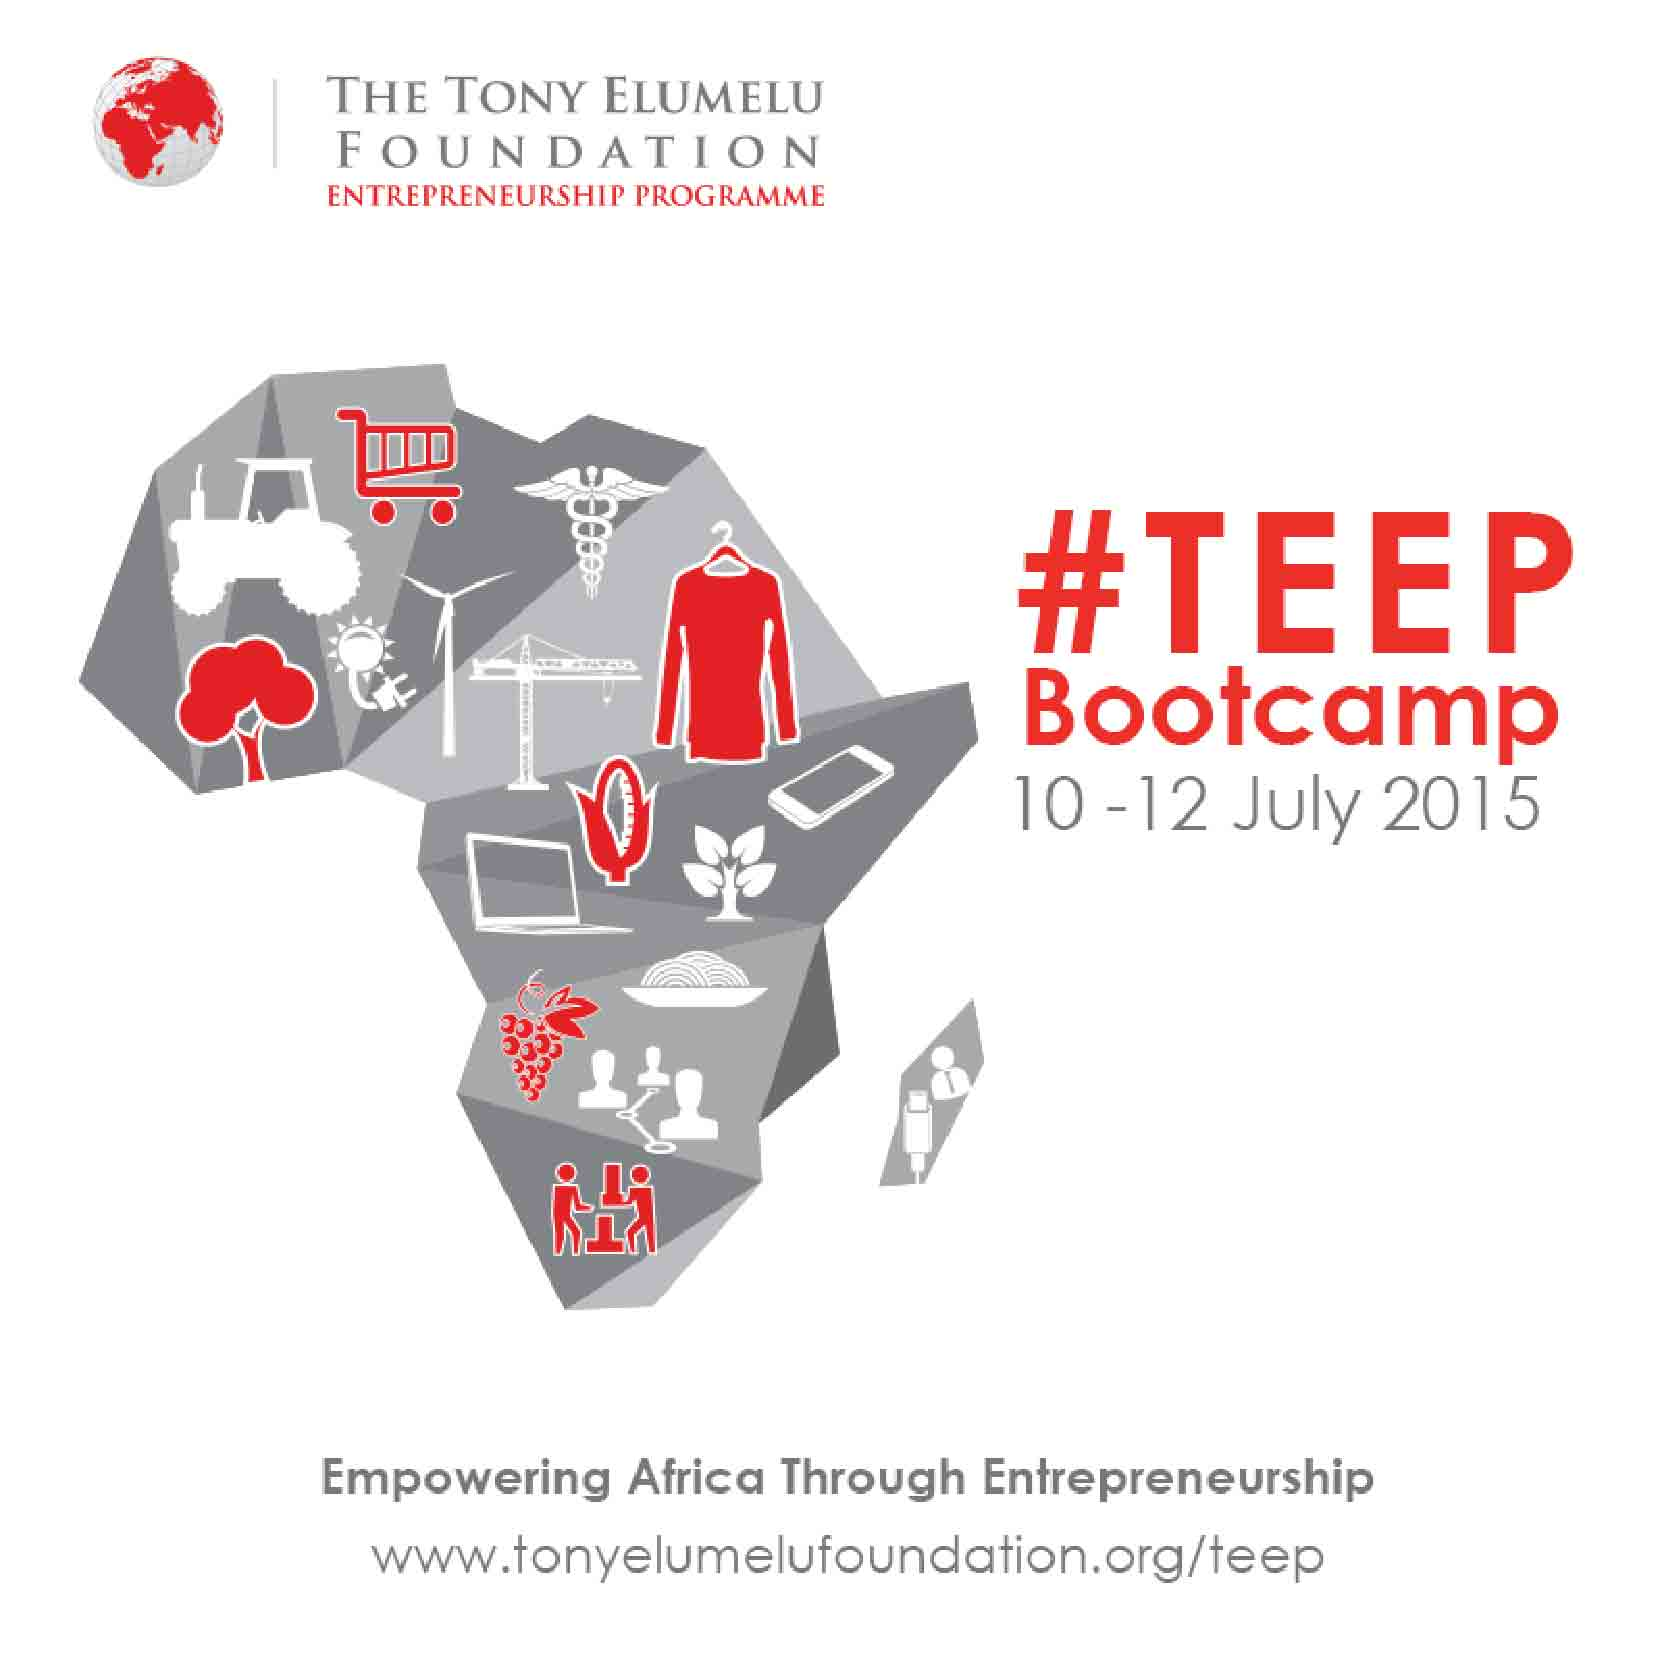 TEEP Bootcamp 2015- What Happens There? - The Tony Elumelu ...